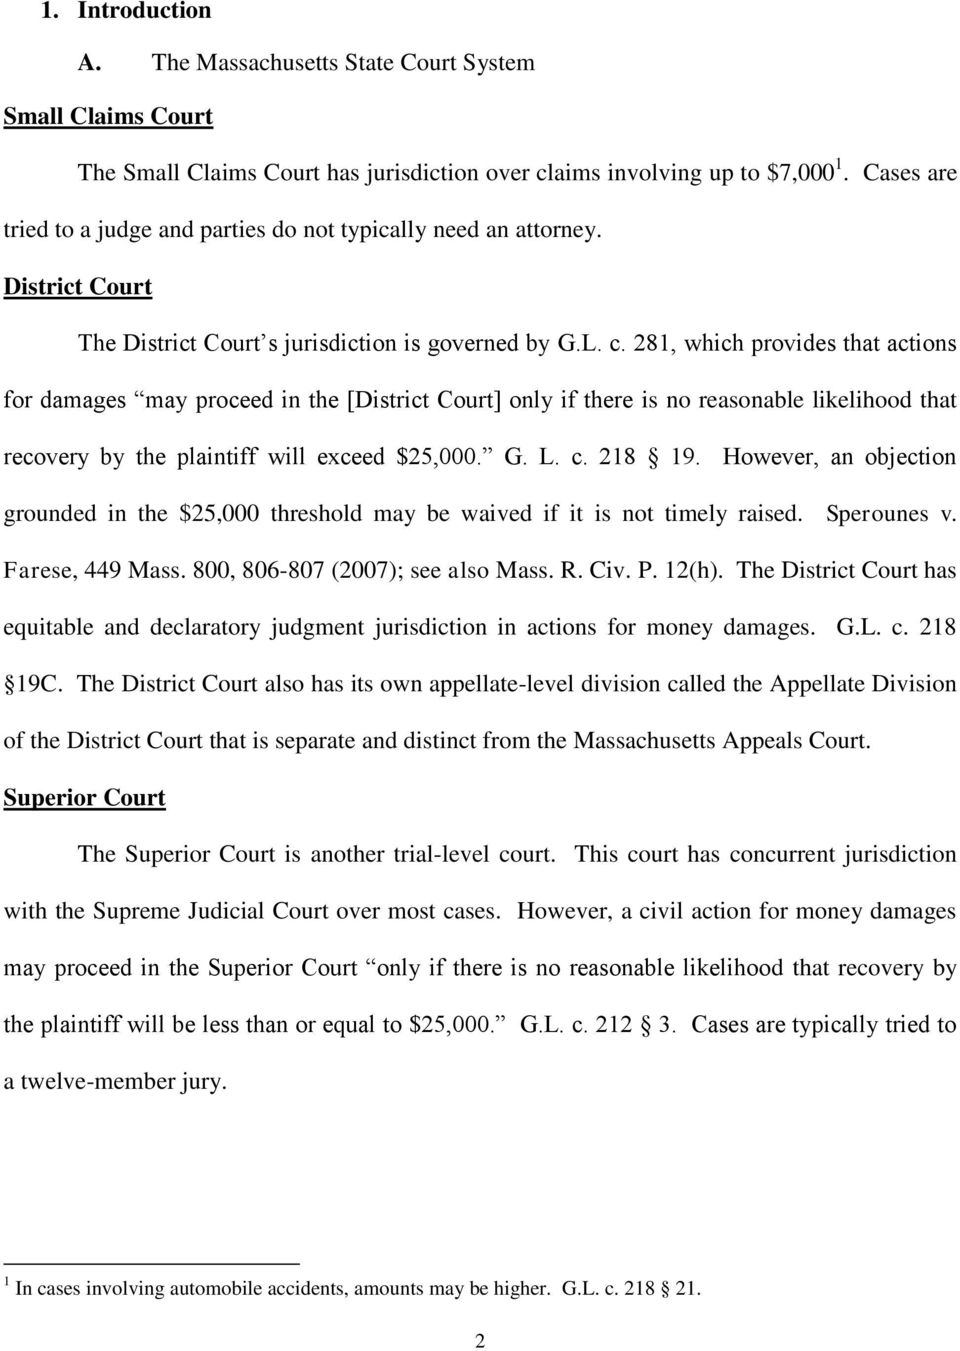 281, which provides that actions for damages may proceed in the [District Court] only if there is no reasonable likelihood that recovery by the plaintiff will exceed $25,000. G. L. c. 218 19.